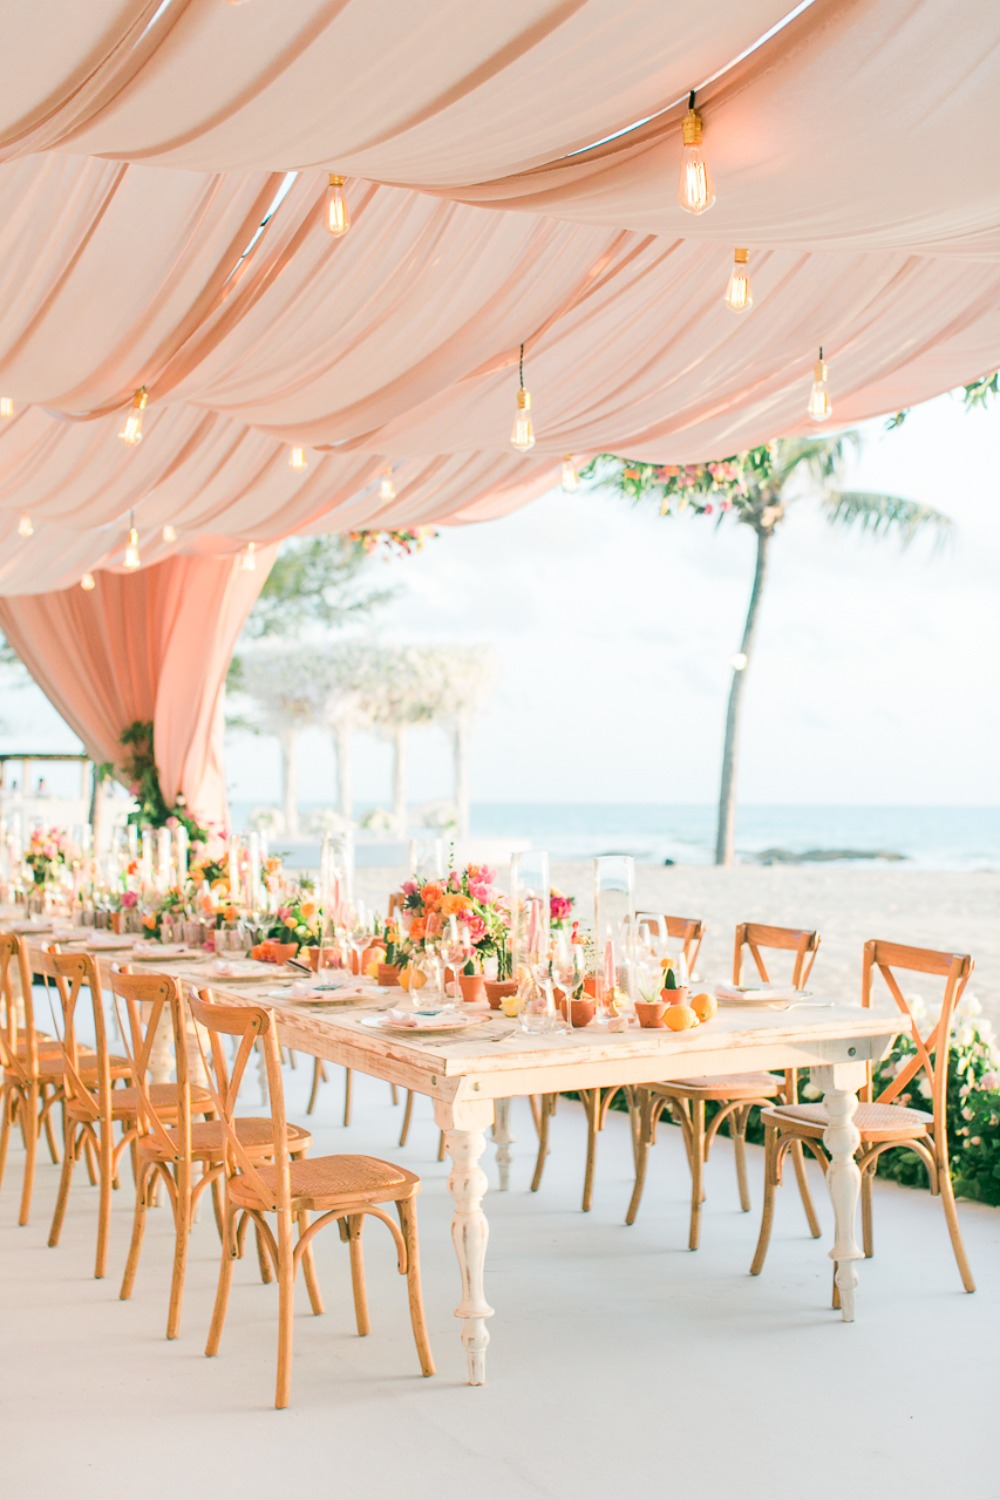 Dreamy tent reception in Thailand